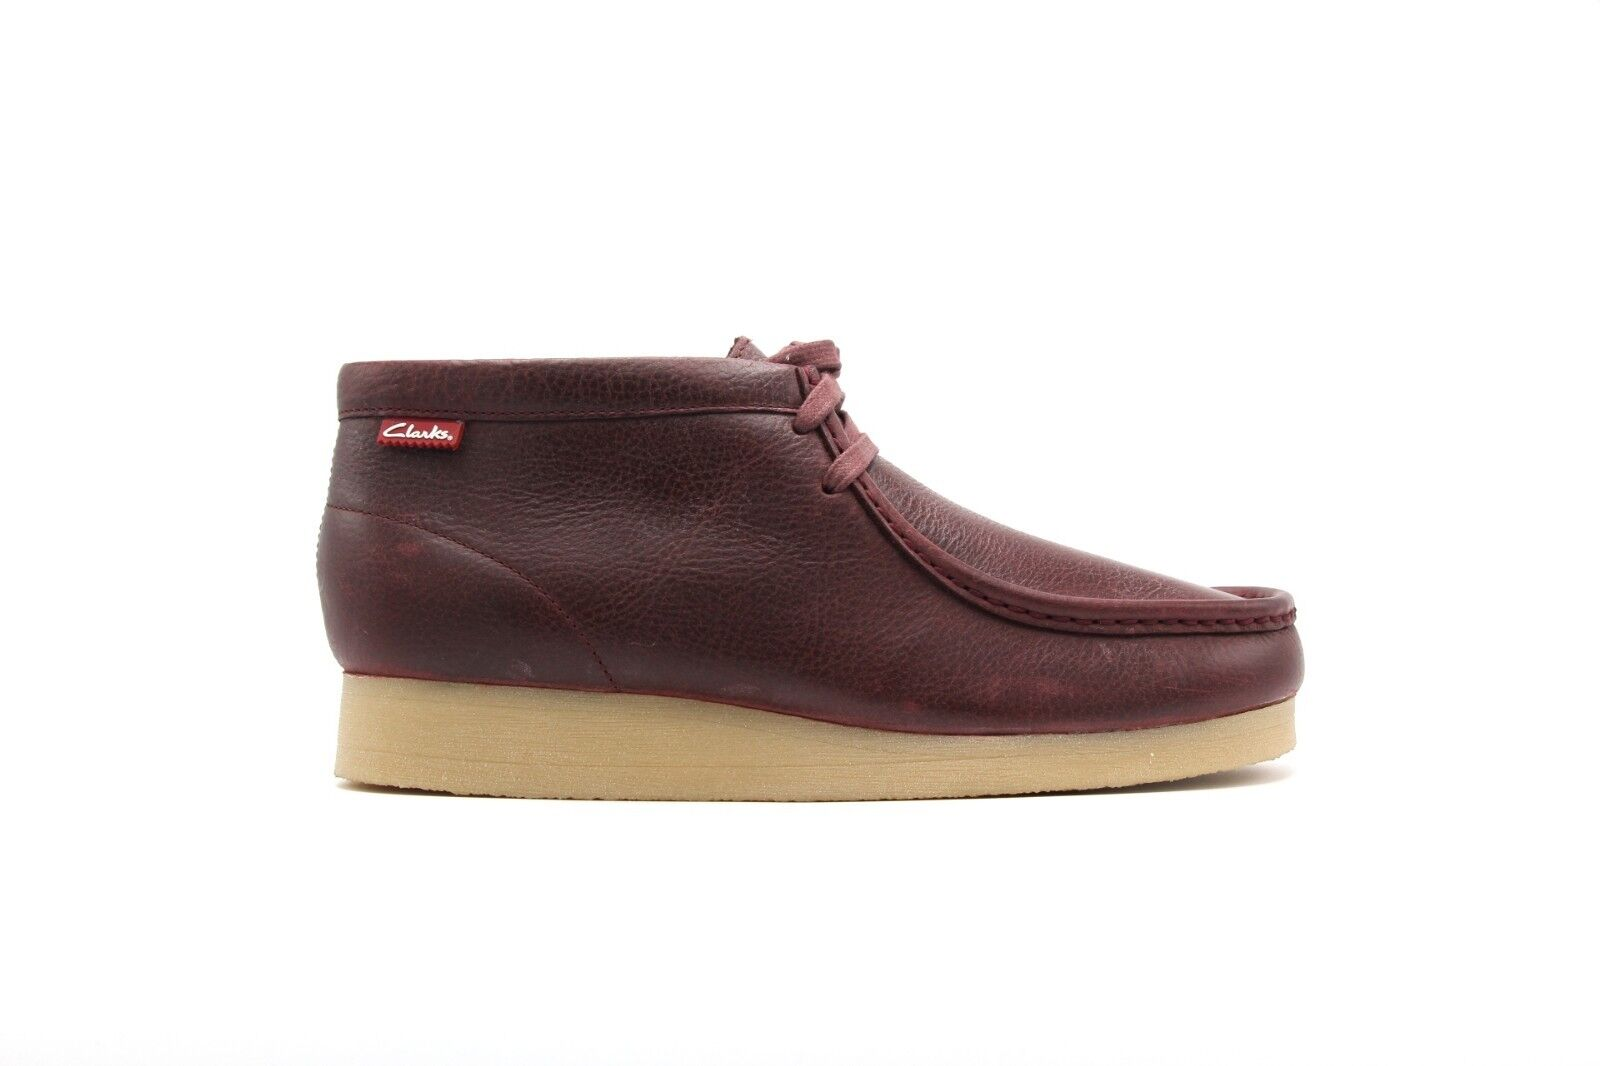 NEW CLARKS STINSON HI BURGUNDY CRANBERRY RED LEATHER WALLABEE STYLE BOOTS